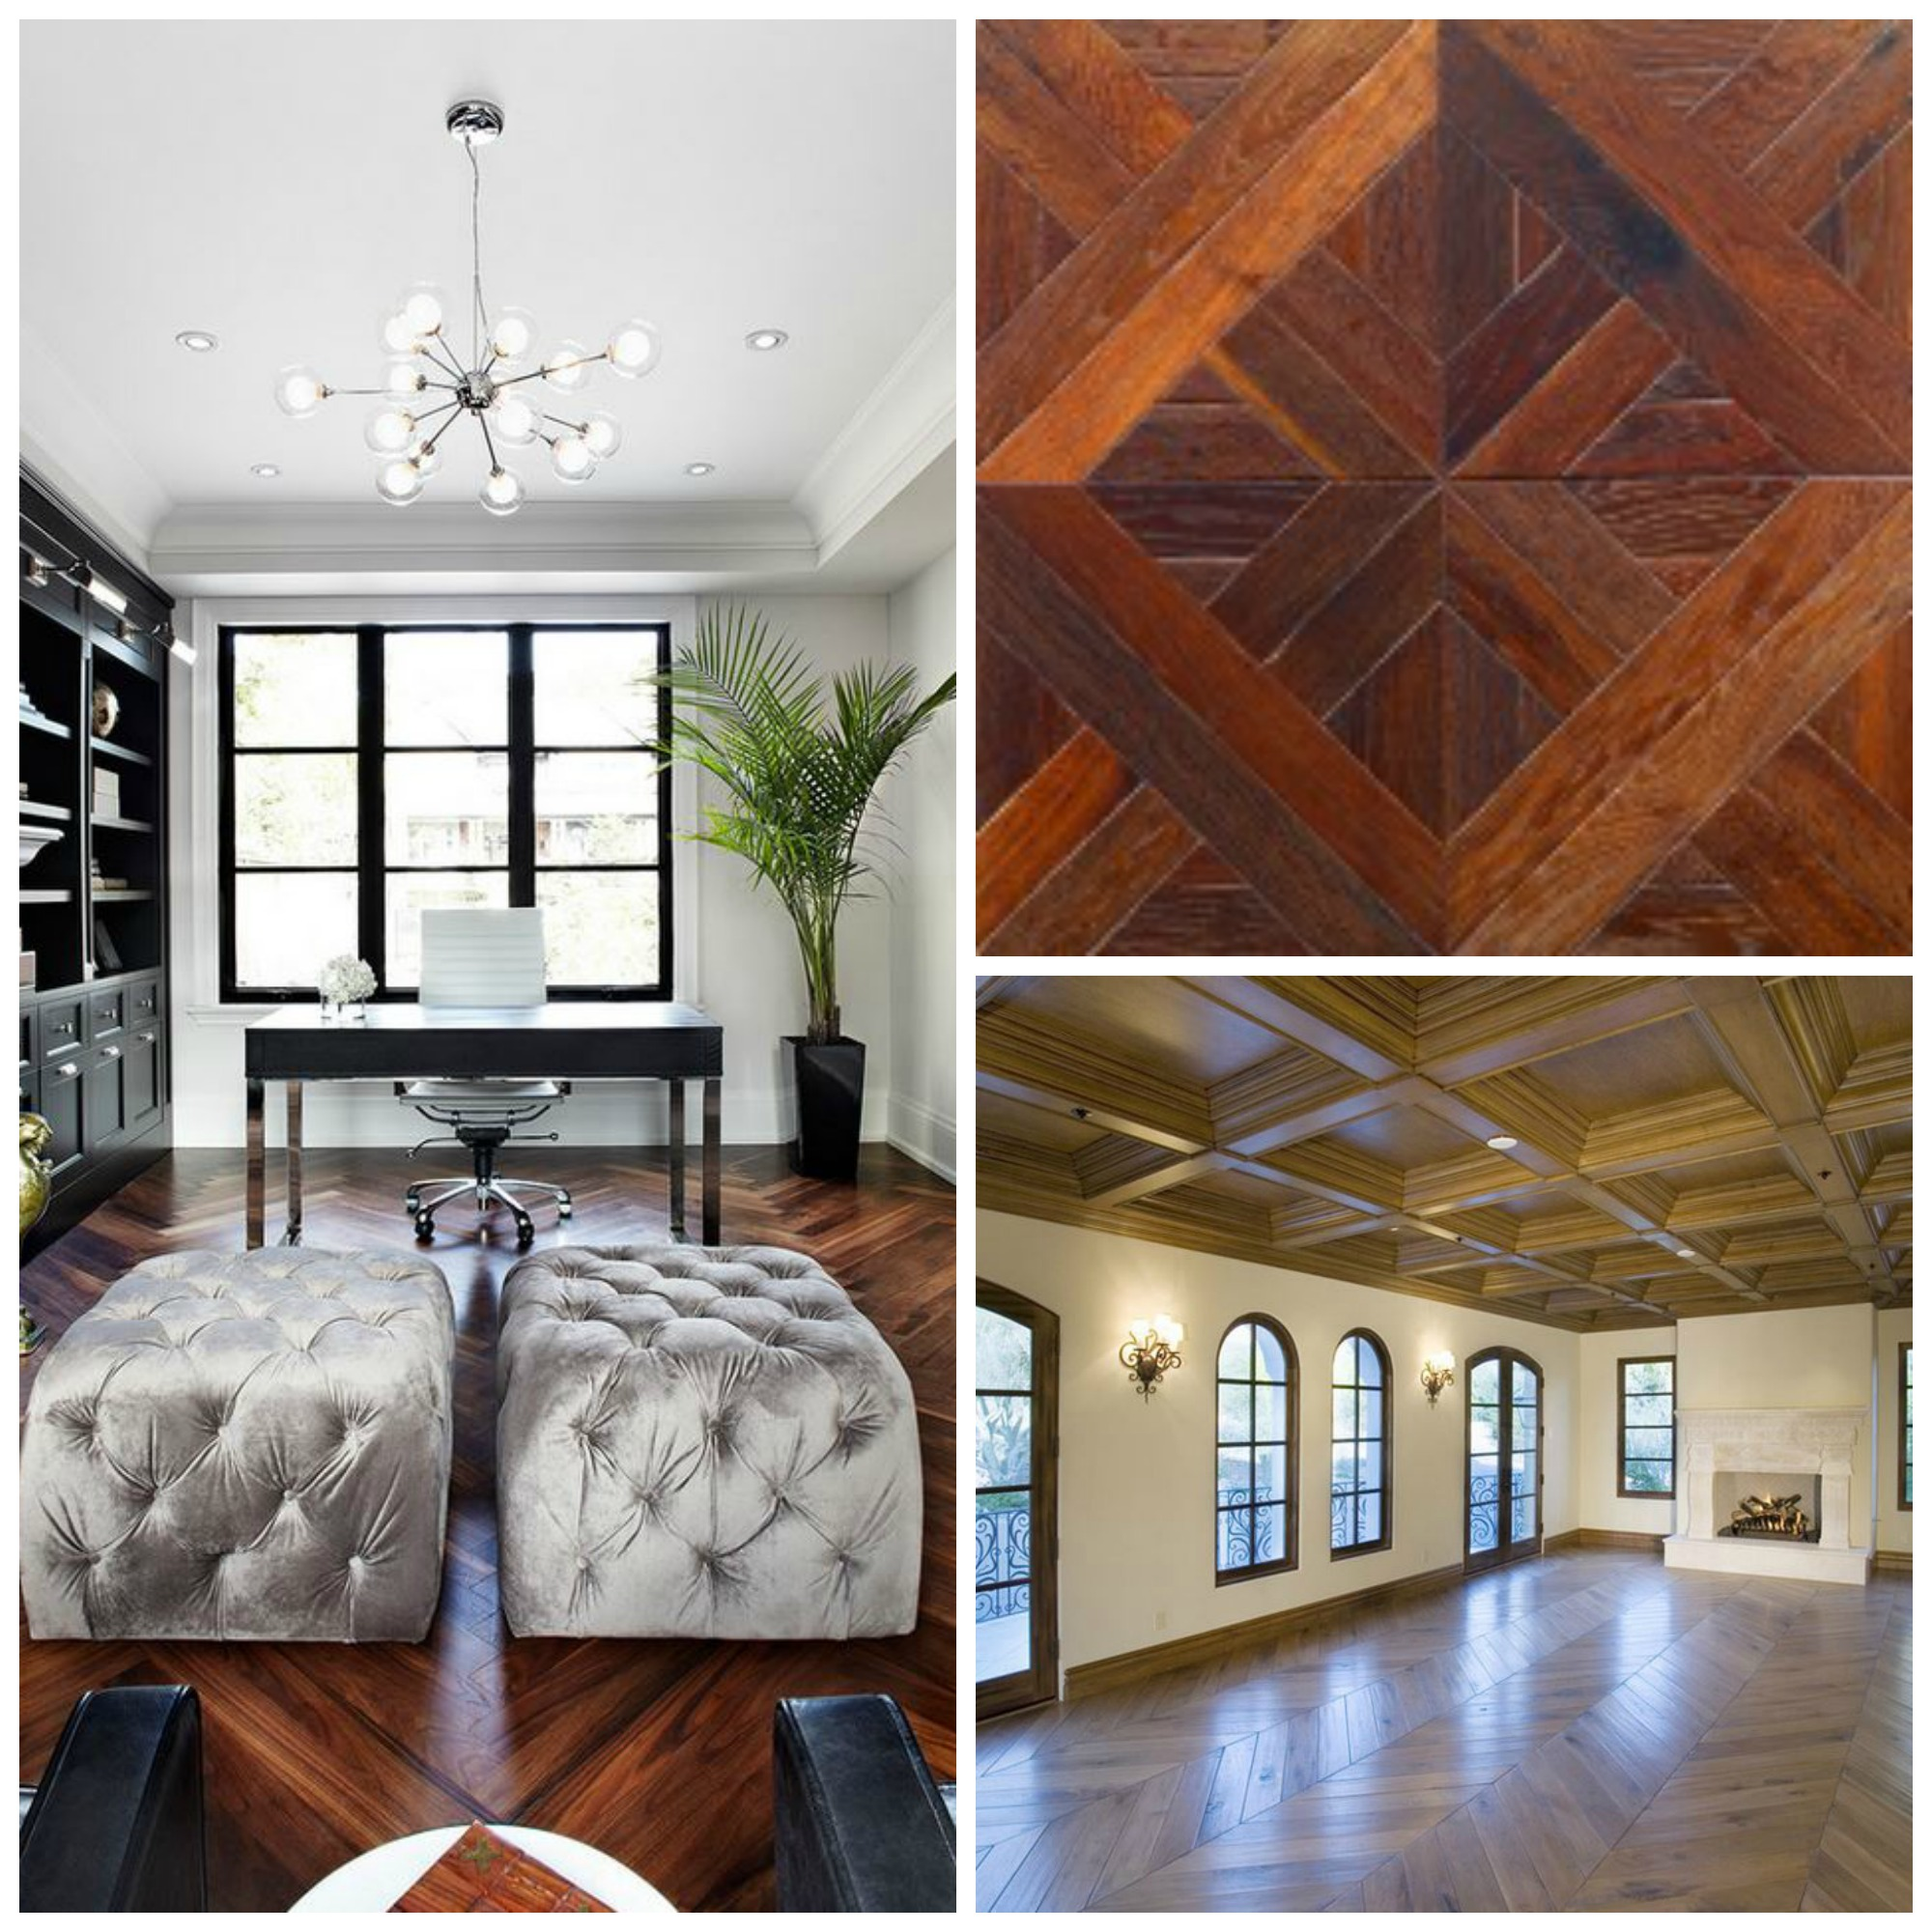 Wood Flooring Patterns - Which flooring is best for house